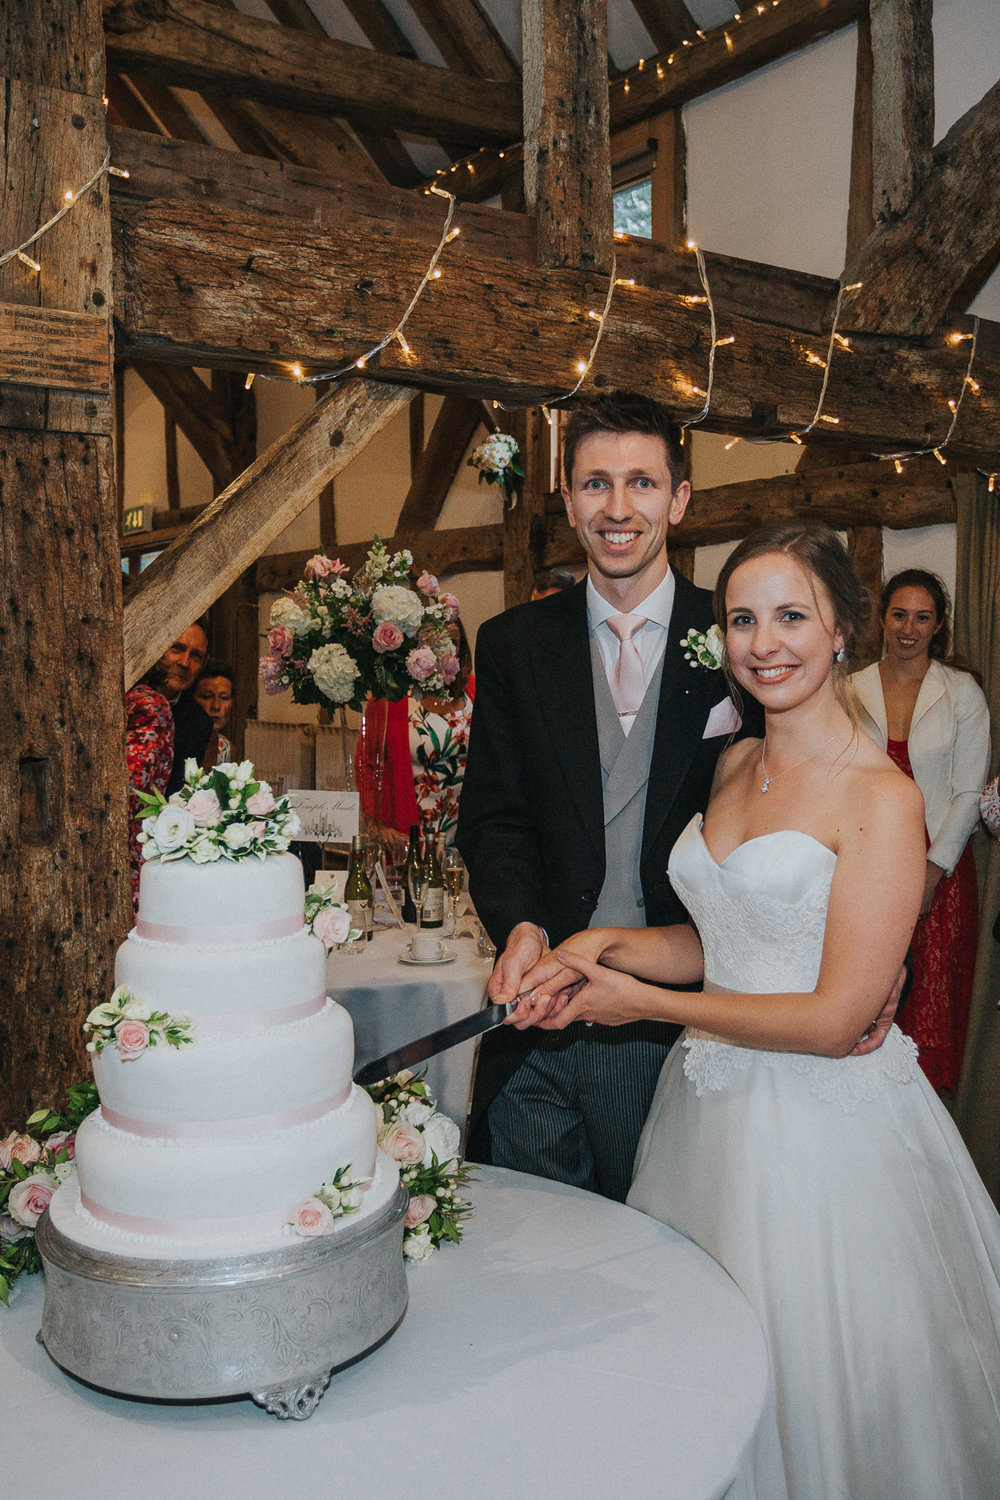 Loseley Park Wedding151.jpg